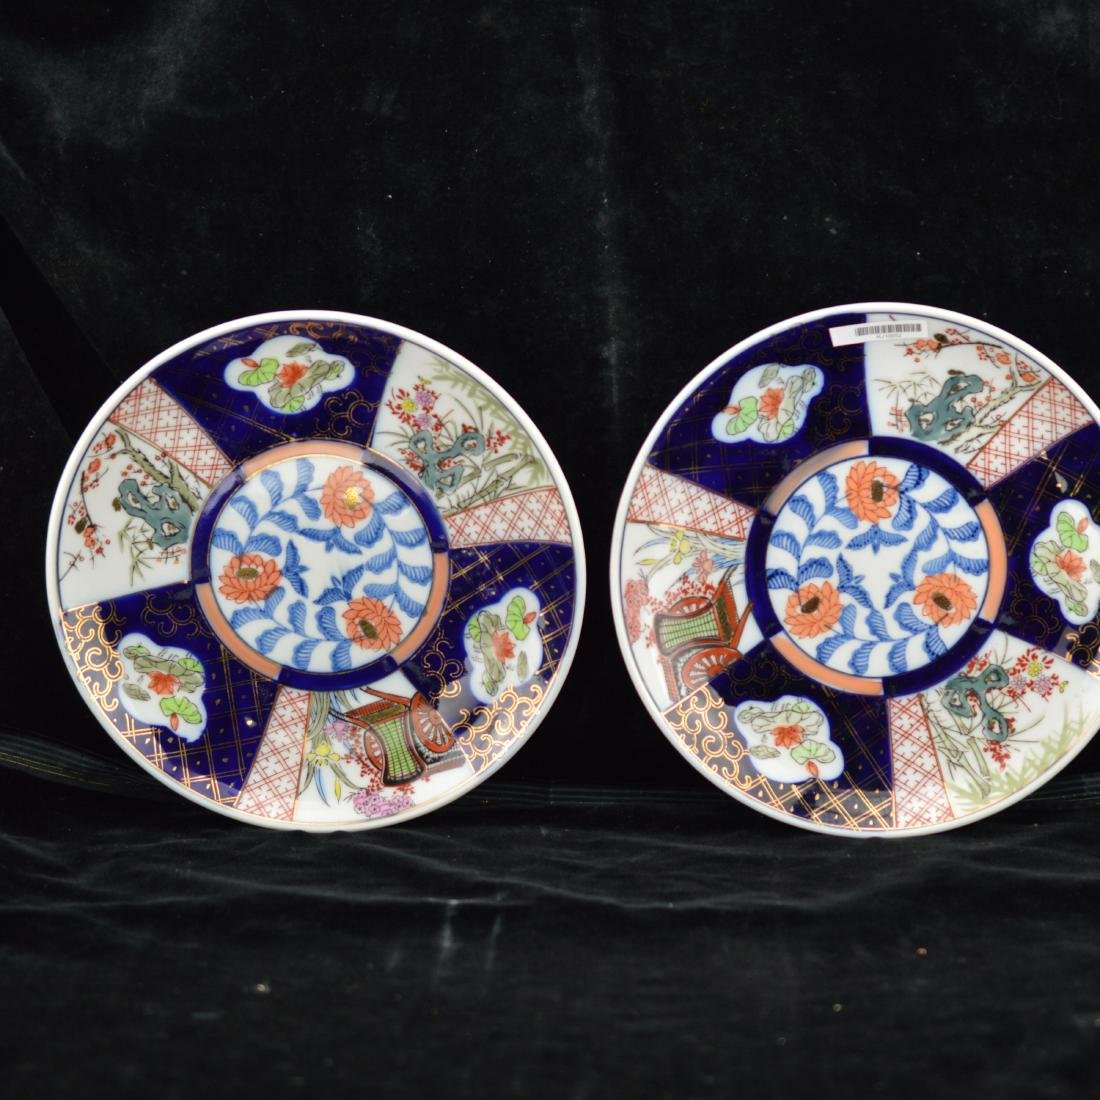 Pair of Fencai Porcelain plates